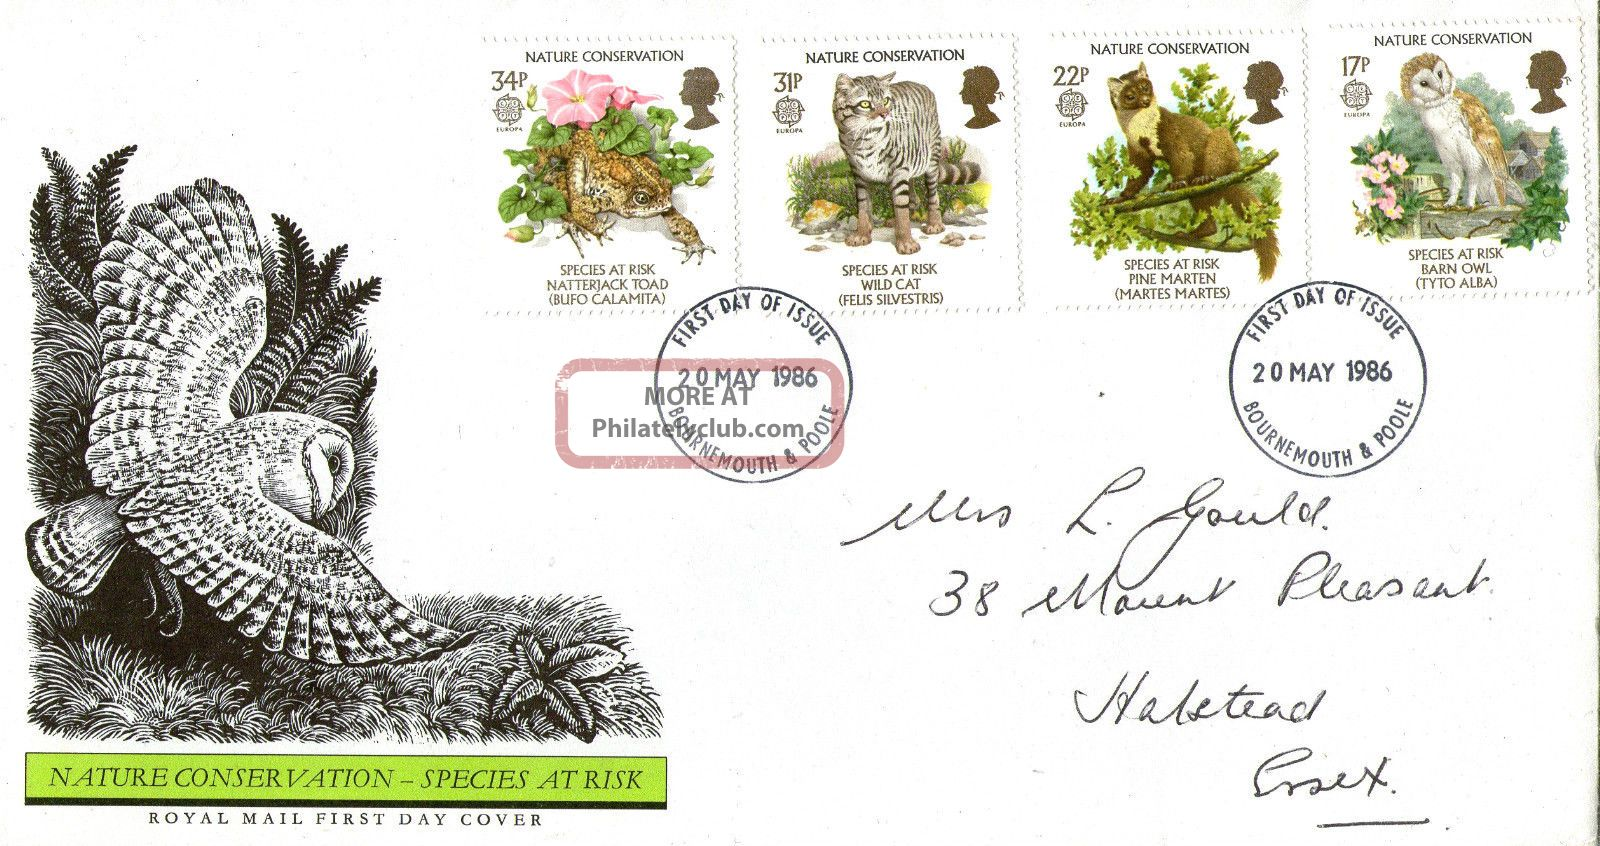 20 May 1986 Nature Conservation Royal Mail First Day Cover Bournemouth Fdi Animal Kingdom photo